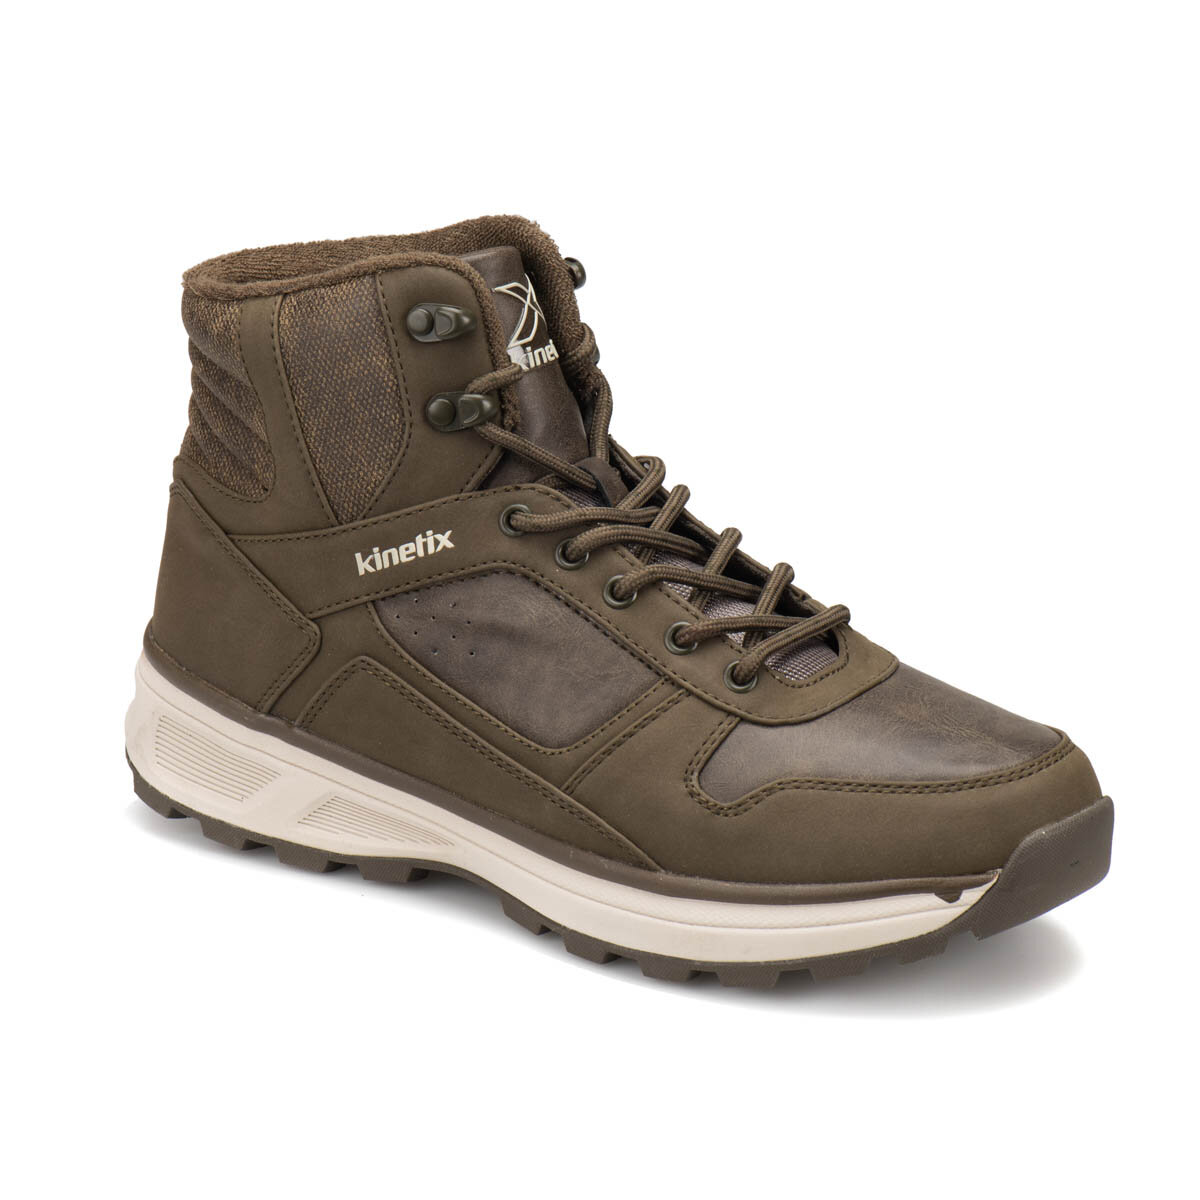 FLO MARK M Khaki Men 'S Sneaker Shoes KINETIX